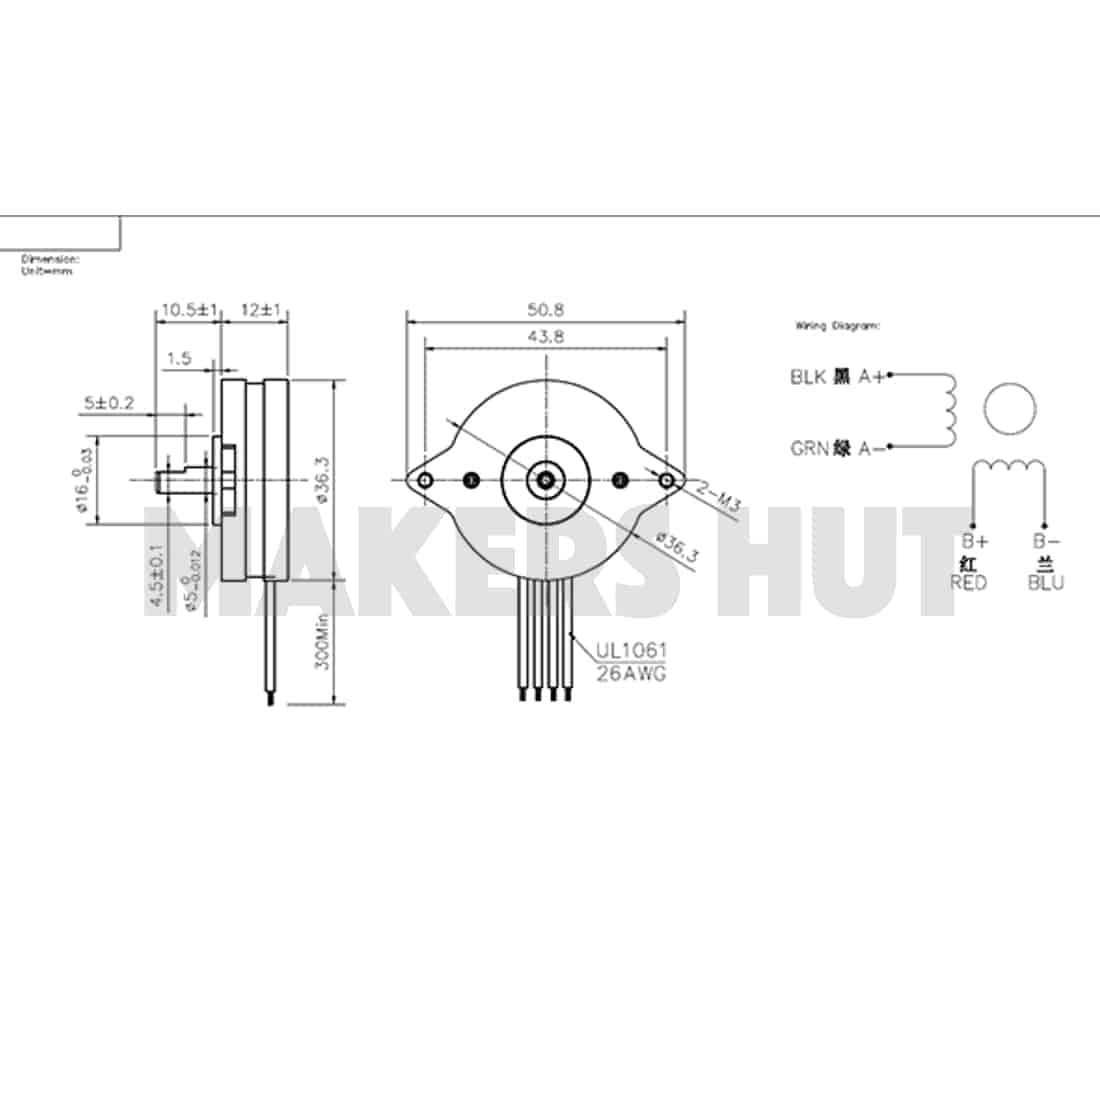 Nema L5 30 Wiring Diagram in addition Nema L5 30 Wiring Diagram moreover Csaulplugstype furthermore Nema L14 20 Wiring Diagram also 30 Twist Lock Wiring Diagram. on nema l14 20p plug